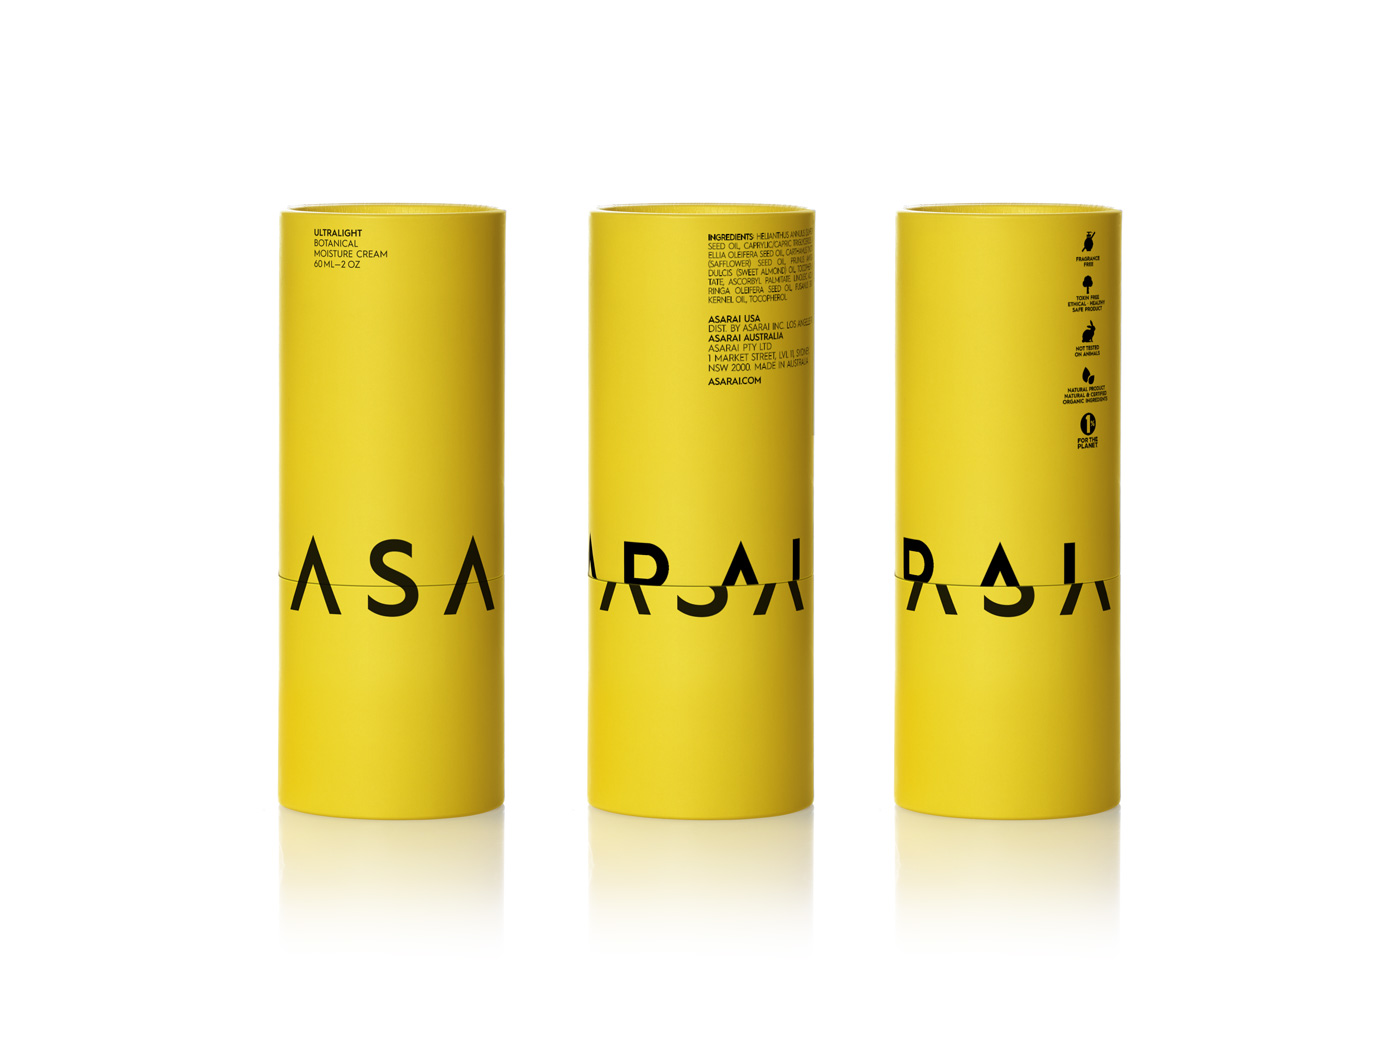 Road Signs Inspire Bold Package Designs Packaging World